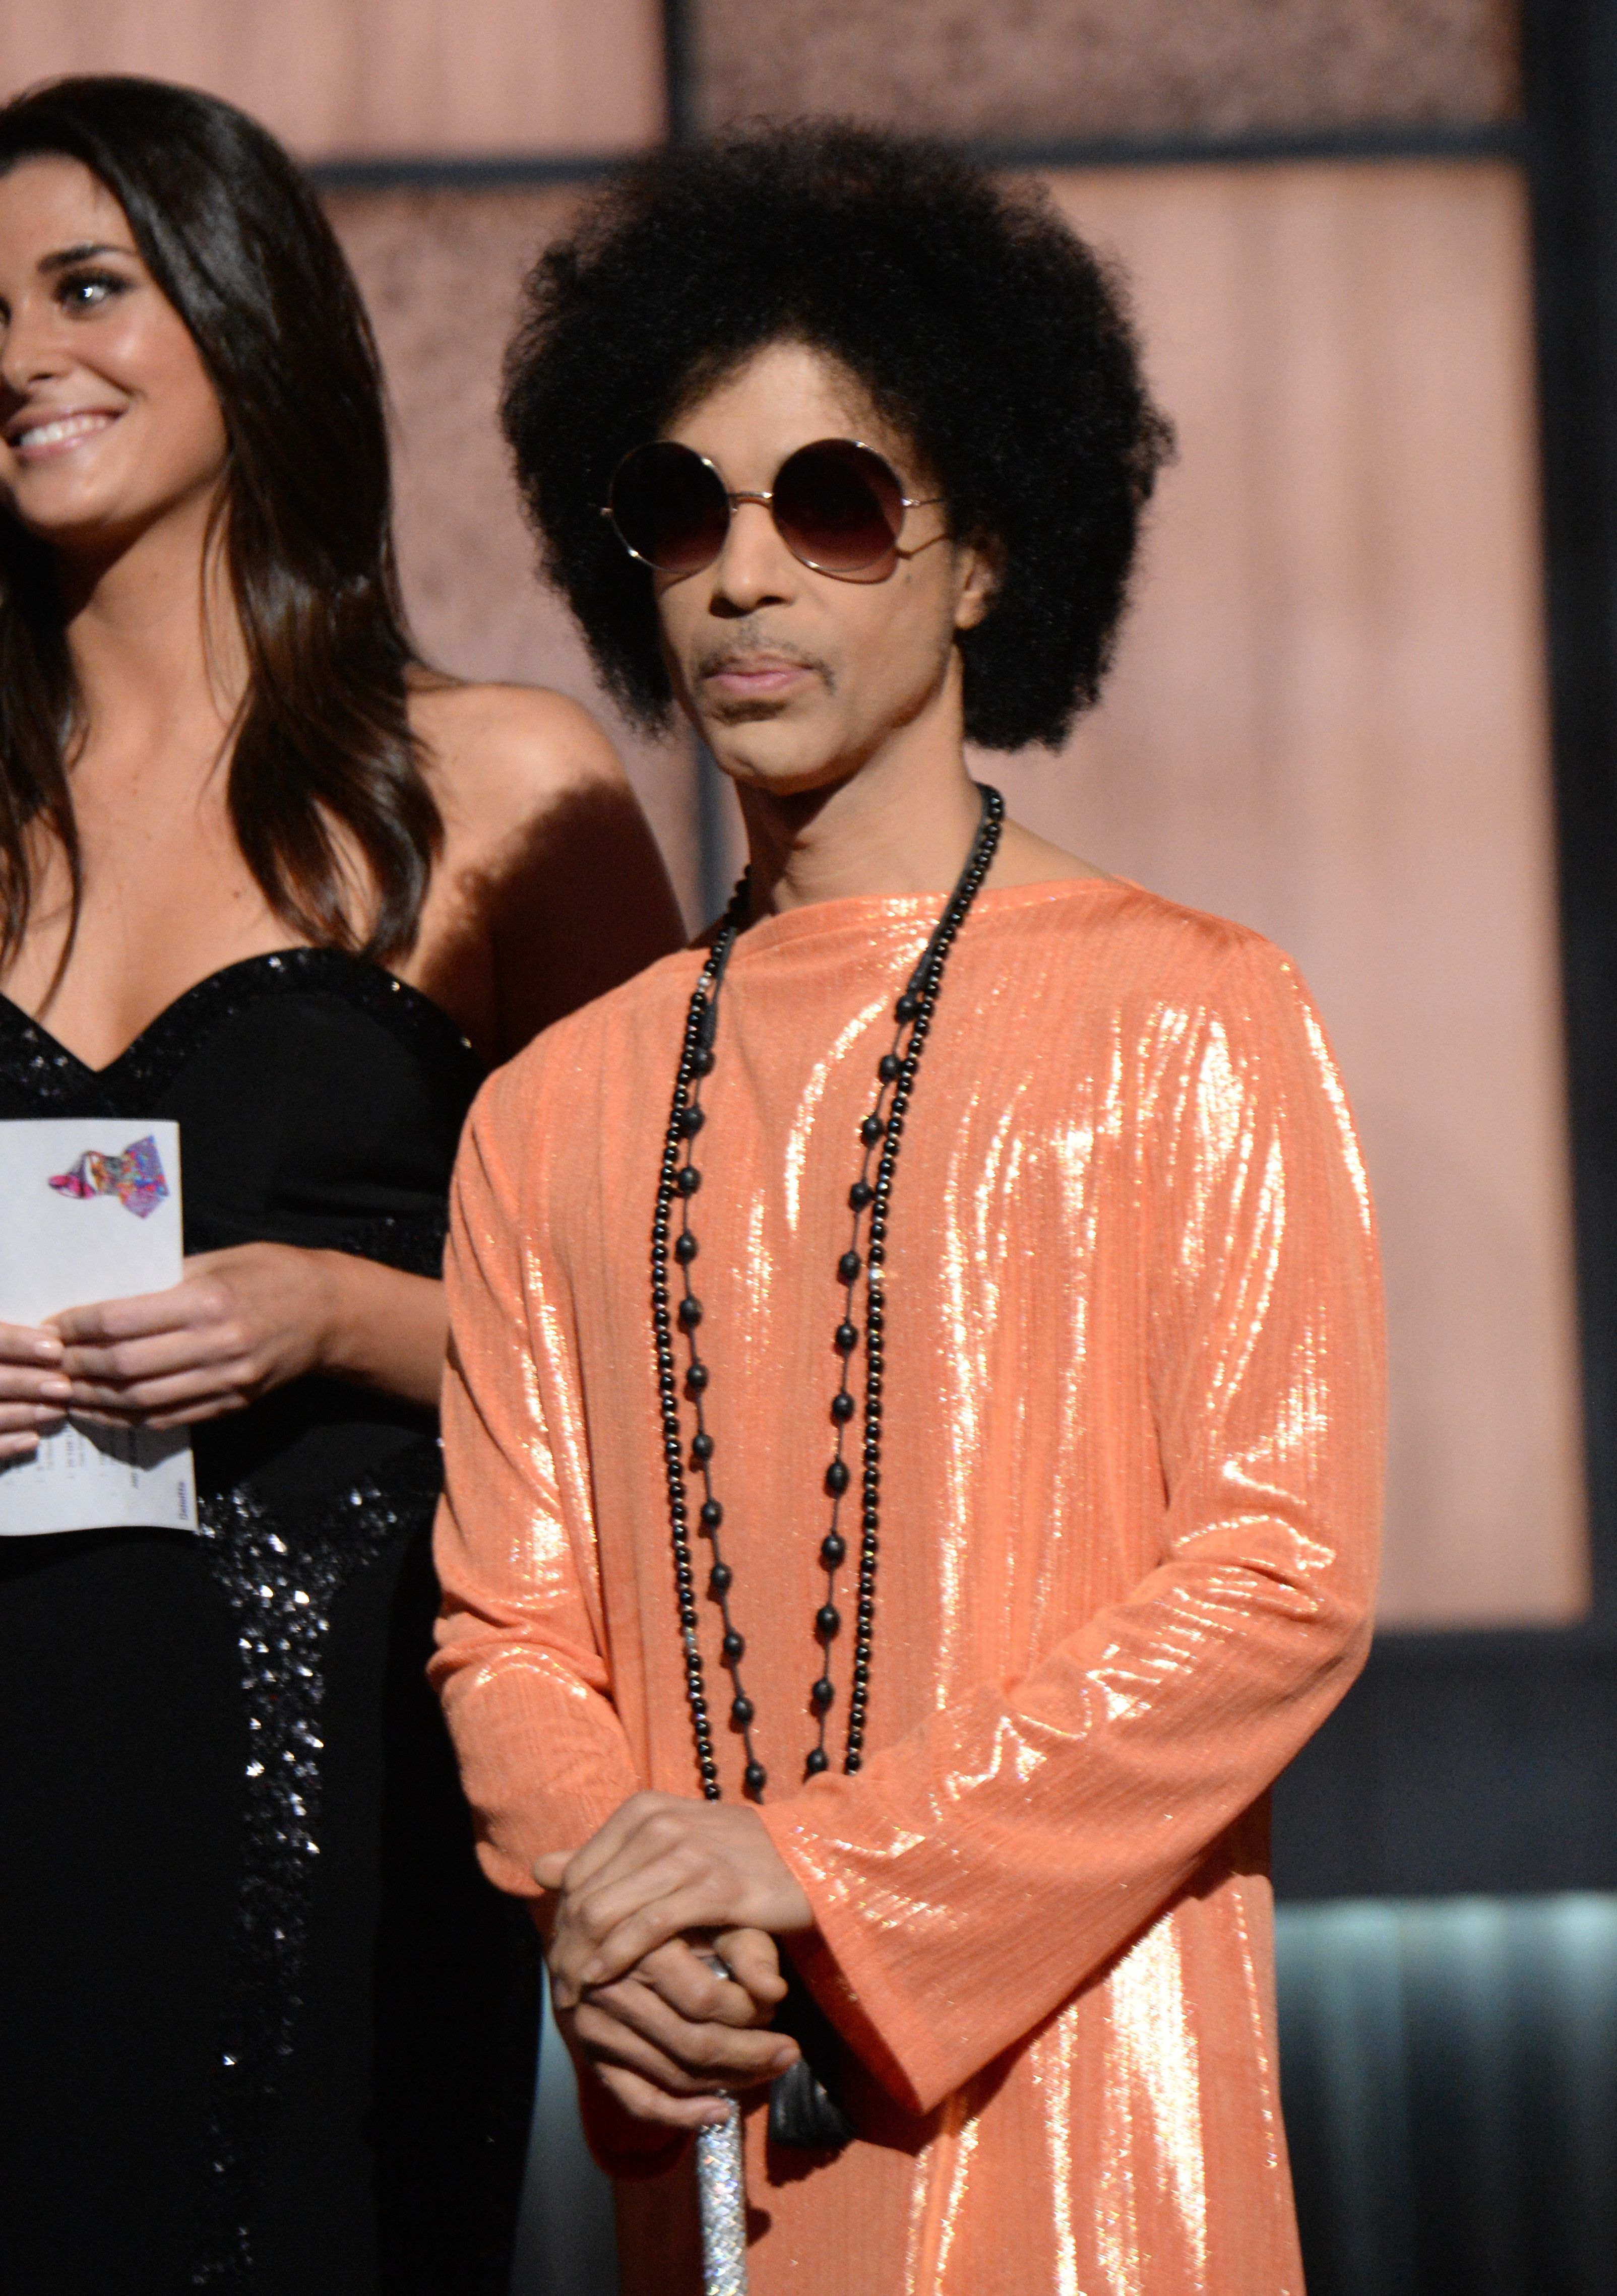 LOS ANGELES, CA - FEBRUARY 08:  Prince presents award  onstage during The 57th Annual GRAMMY Awards at the STAPLES Center on February 8, 2015 in Los Angeles, California.  (Photo by Kevin Mazur/WireImage)